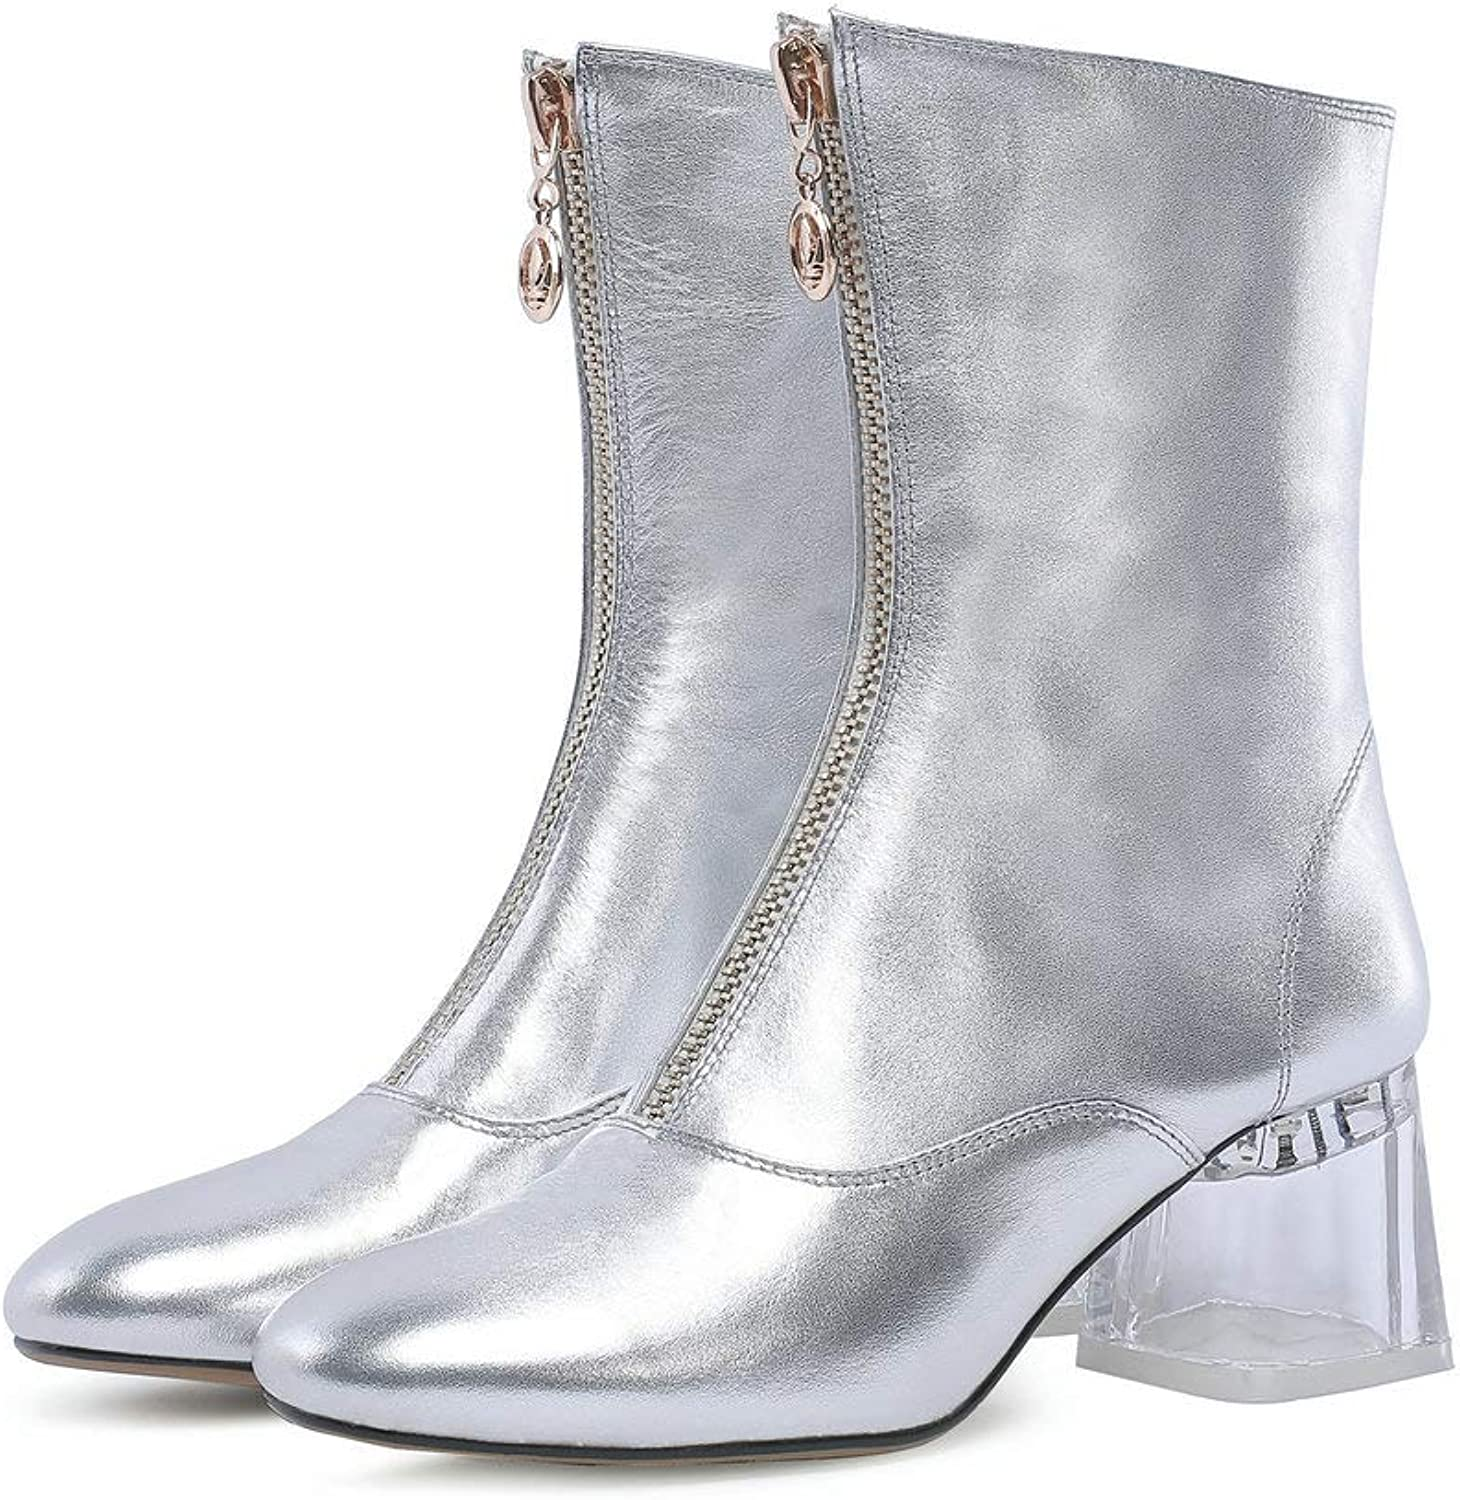 AnMengXinLing Women Ankle Boots Transparent Block Mid Heel Genuine Leather Front Zipper Round Toe Party Mid Calf Booties Silver